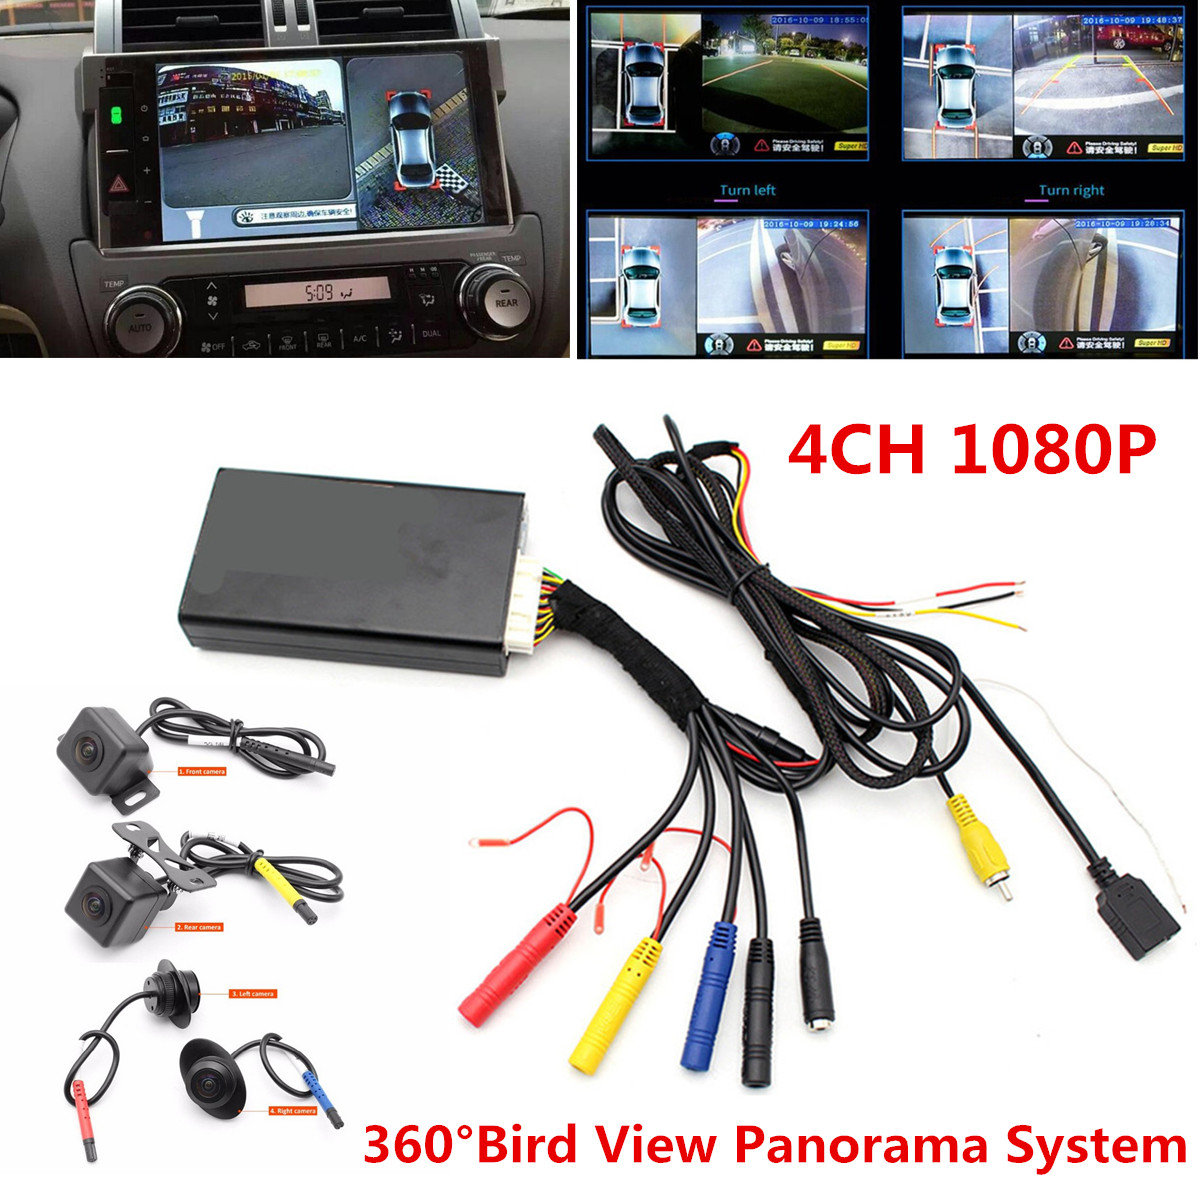 HD 360° Surround Bird View Panorama System Car 4-CH 1080P DVR Recording Cameras